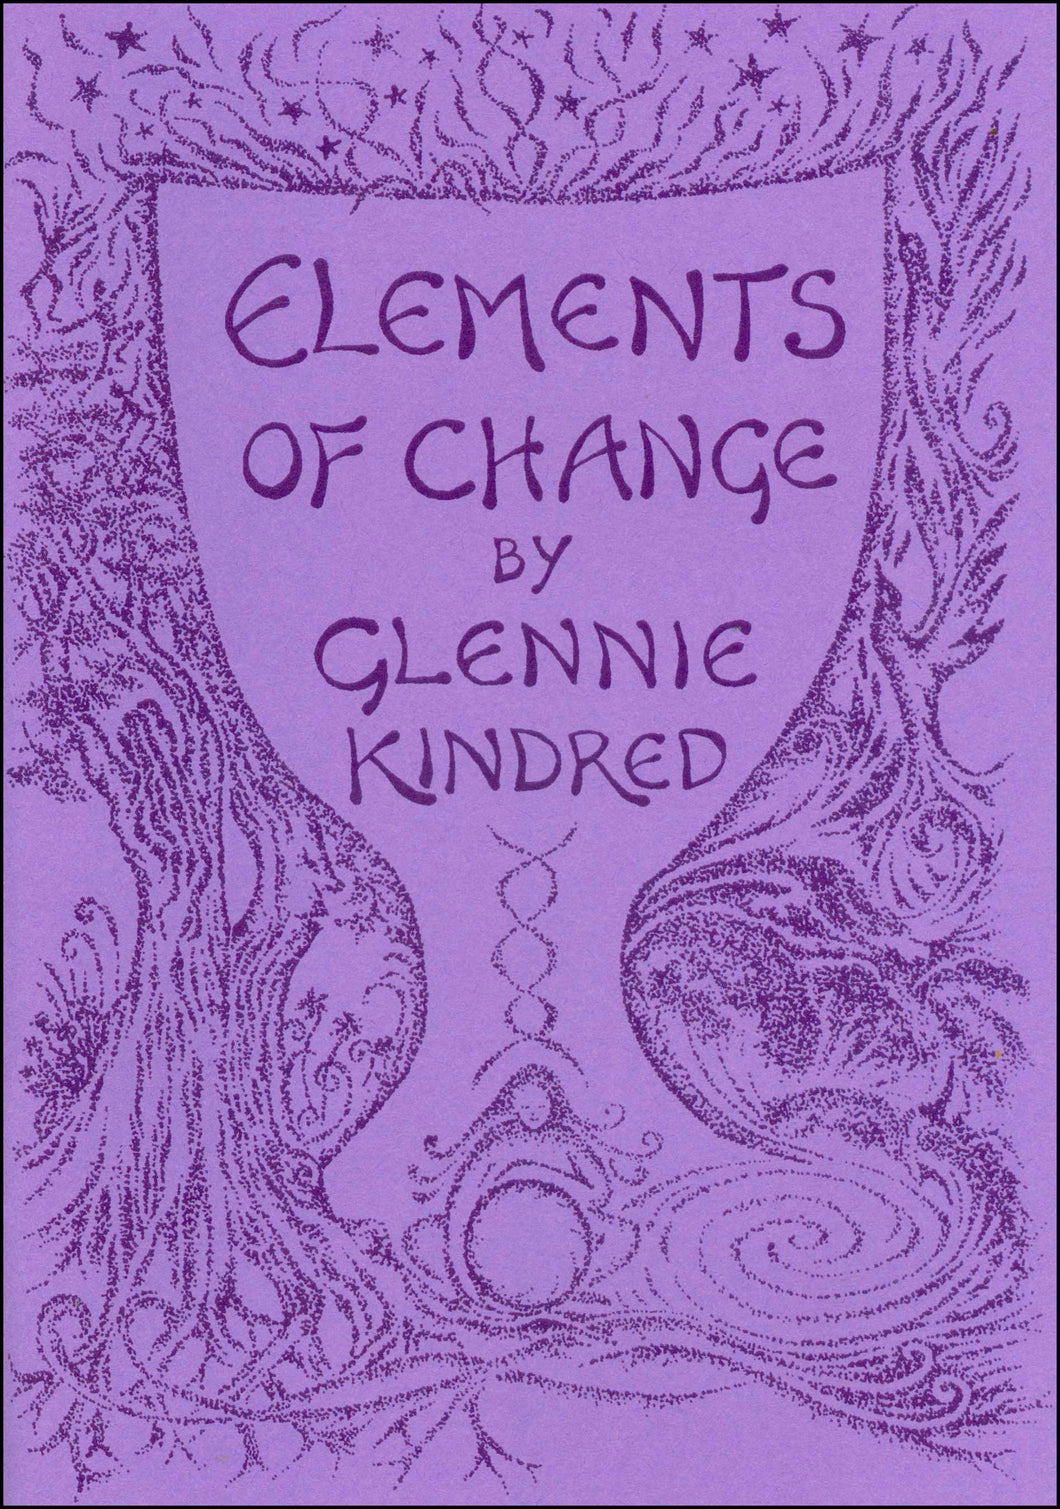 Glennie Kindred handmade illustrated book elements of change for Modern Craft